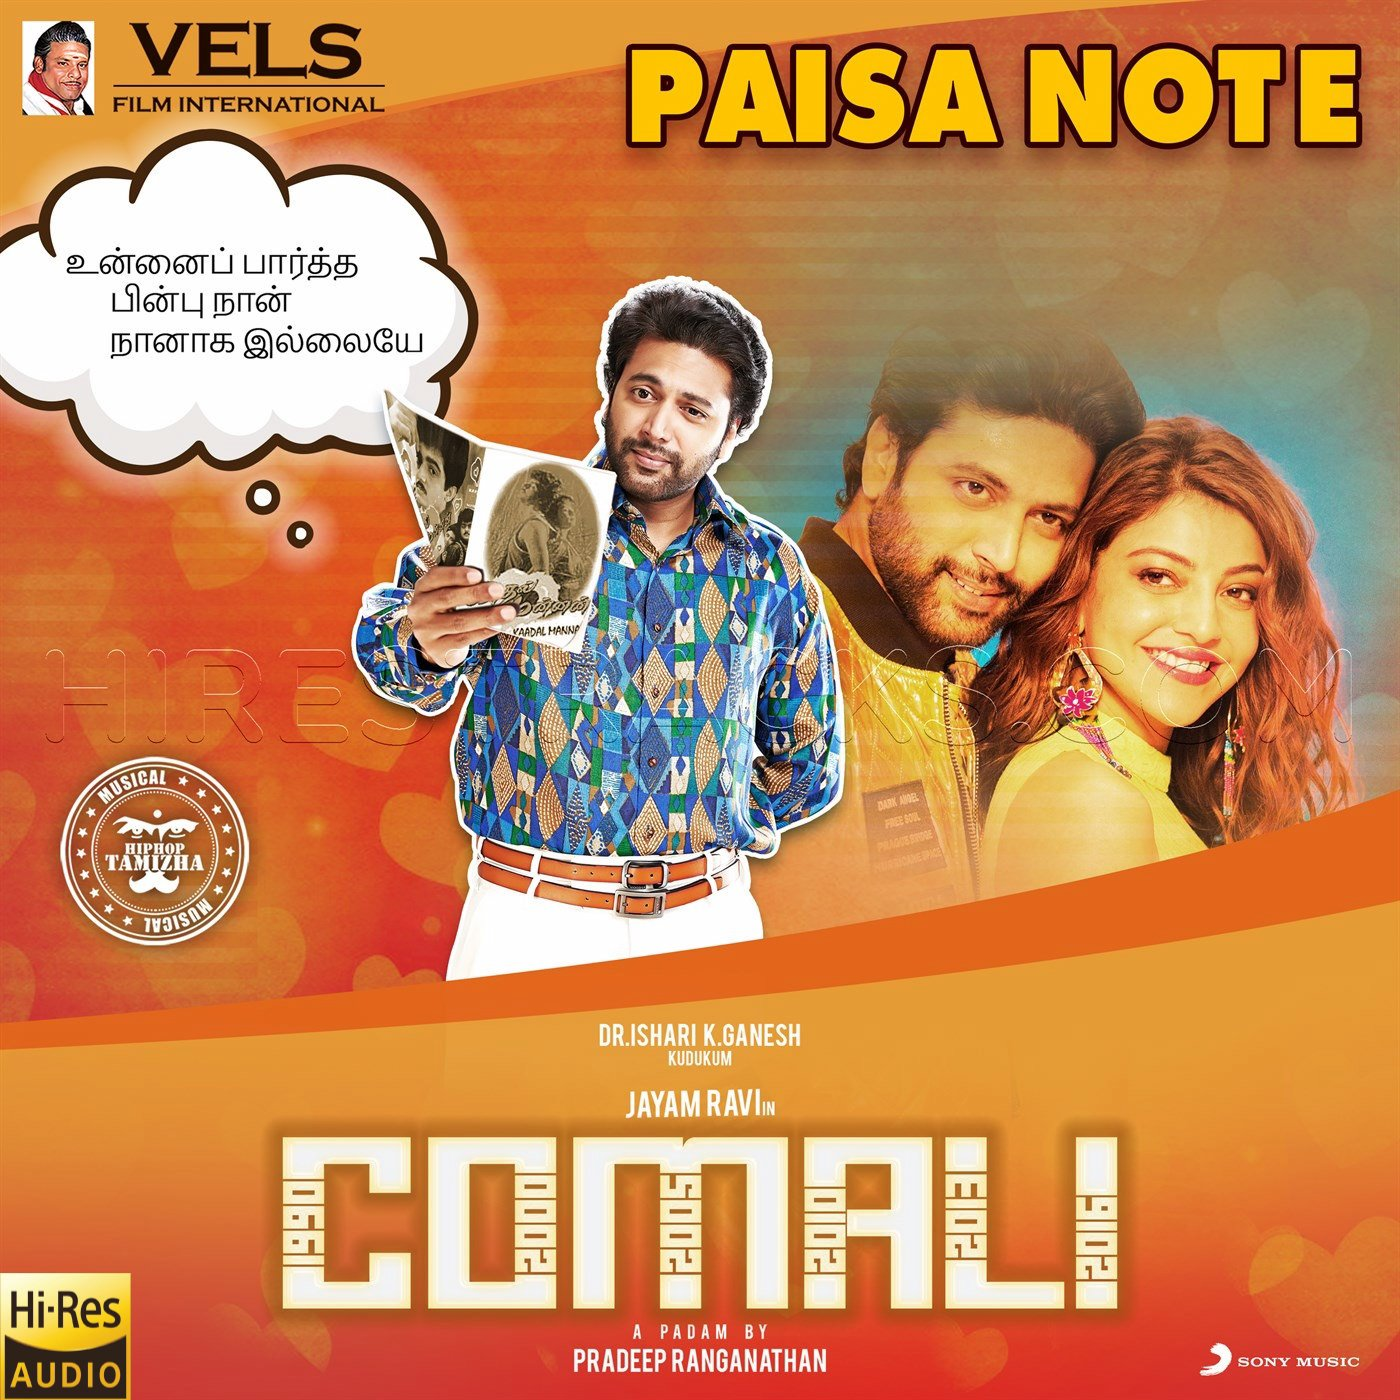 Paisa Note (From Comali) – Single (2019) [24 BIT-48 KHZ-WAV]